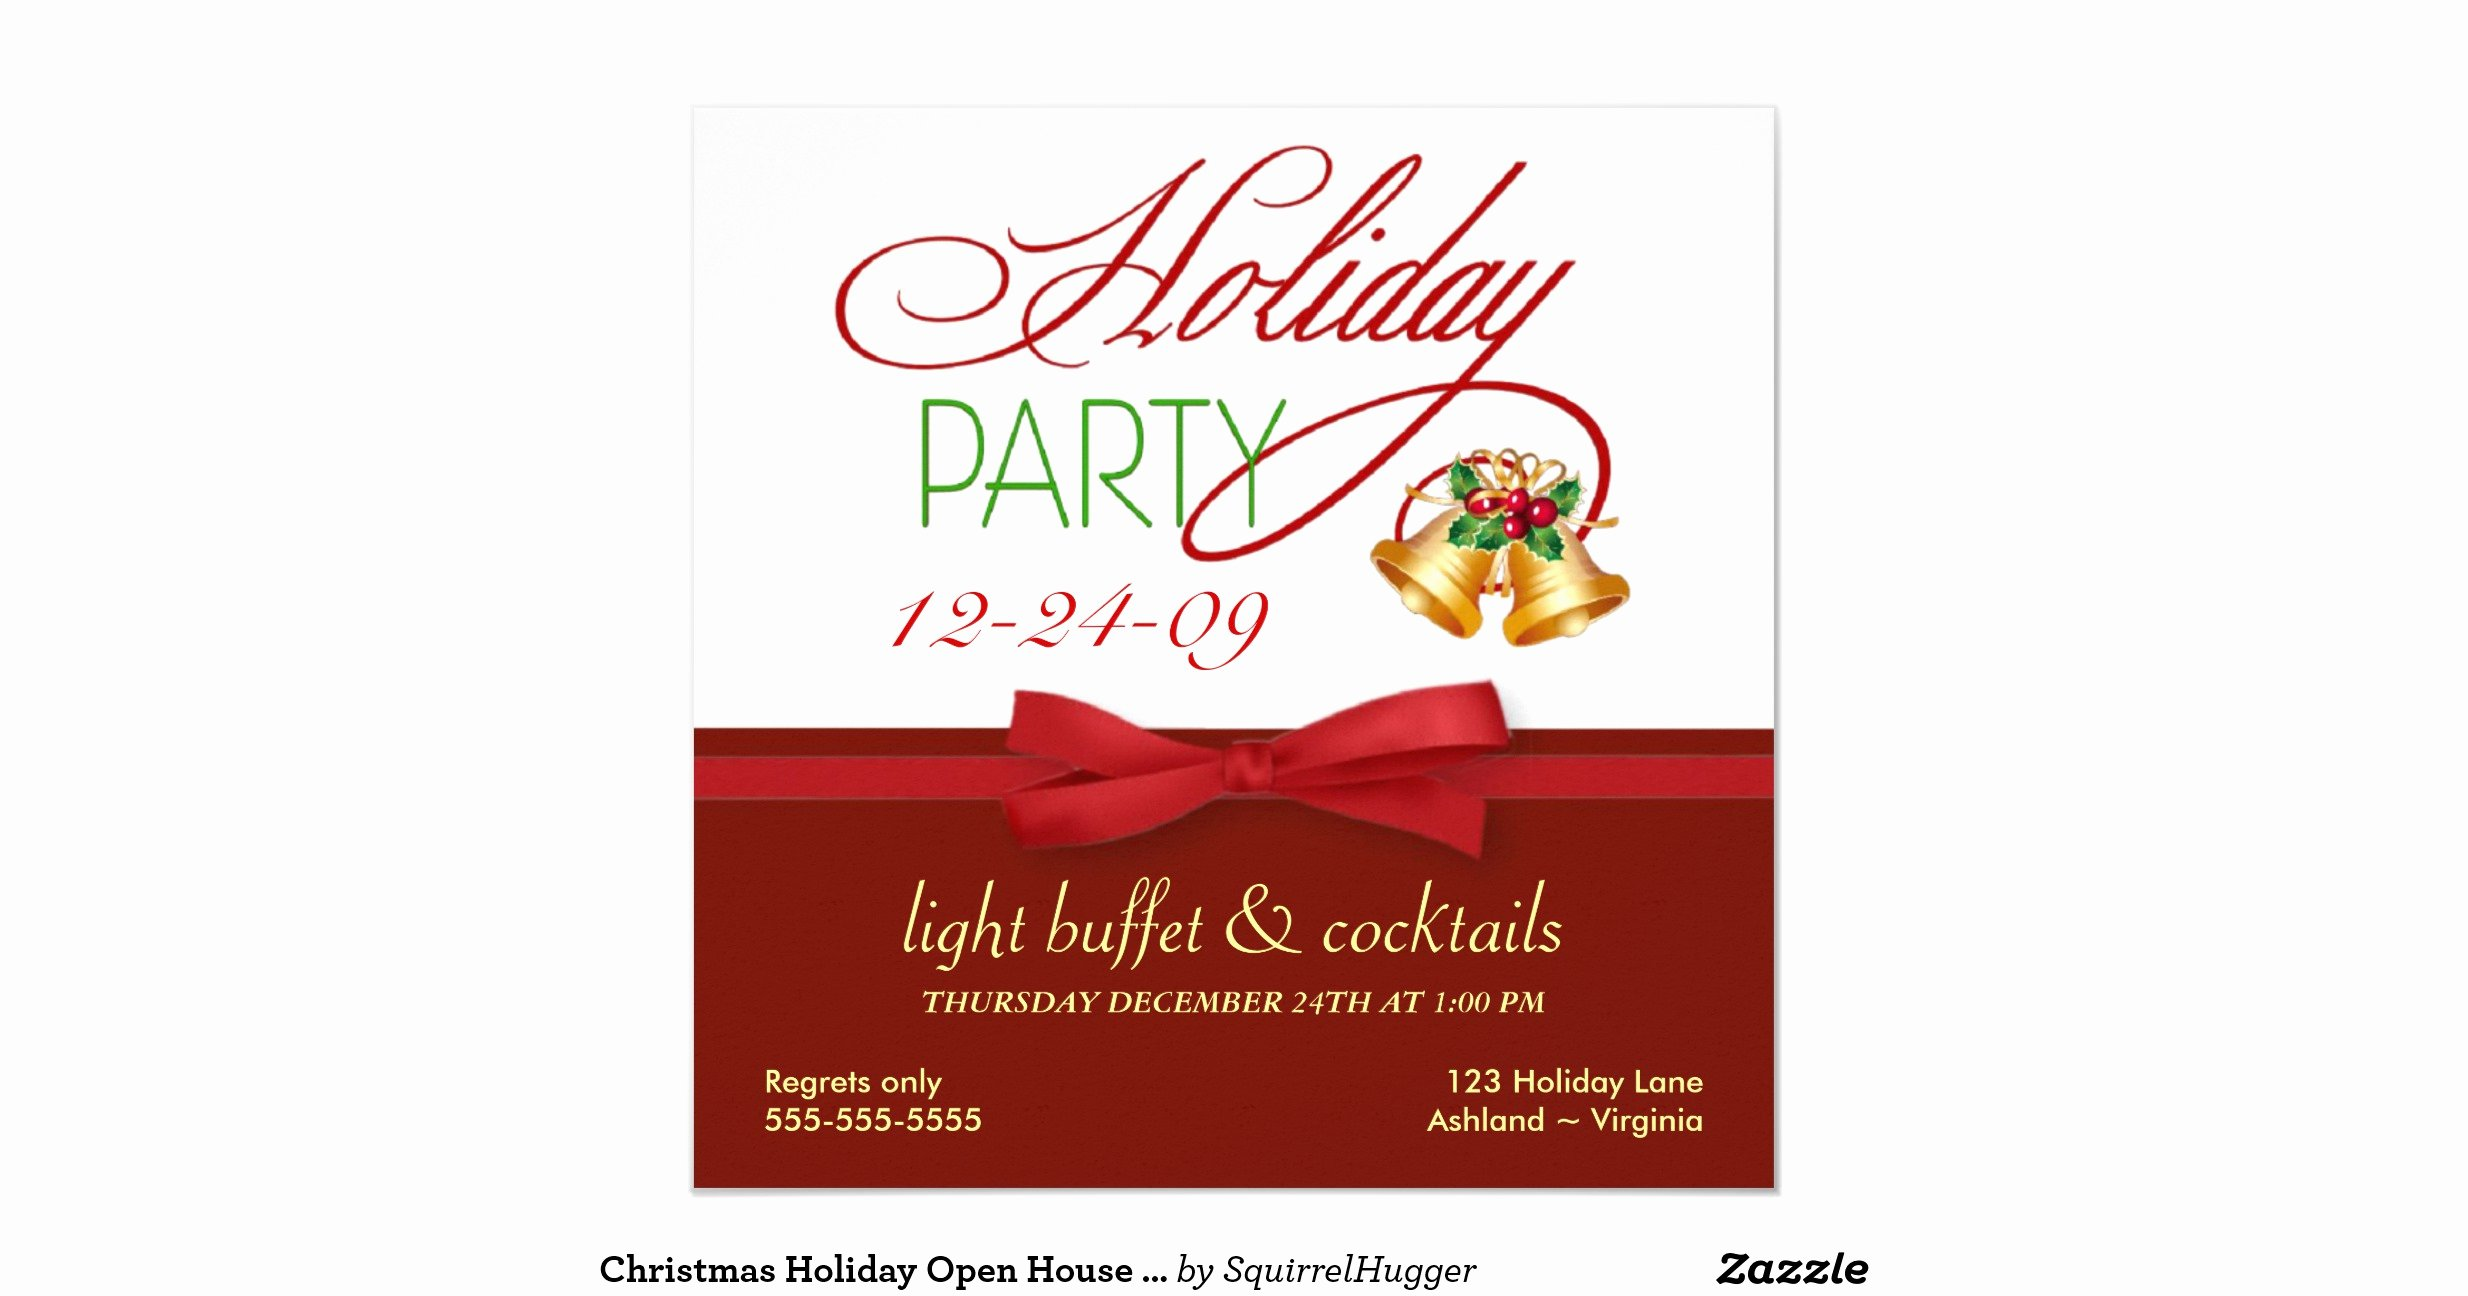 Holiday Open House Invitations Unique Christmas Holiday Open House Invitations Rf75f66e3cbca Ea752c0e2d01f82 Zk9yl 1200 Rlvnet